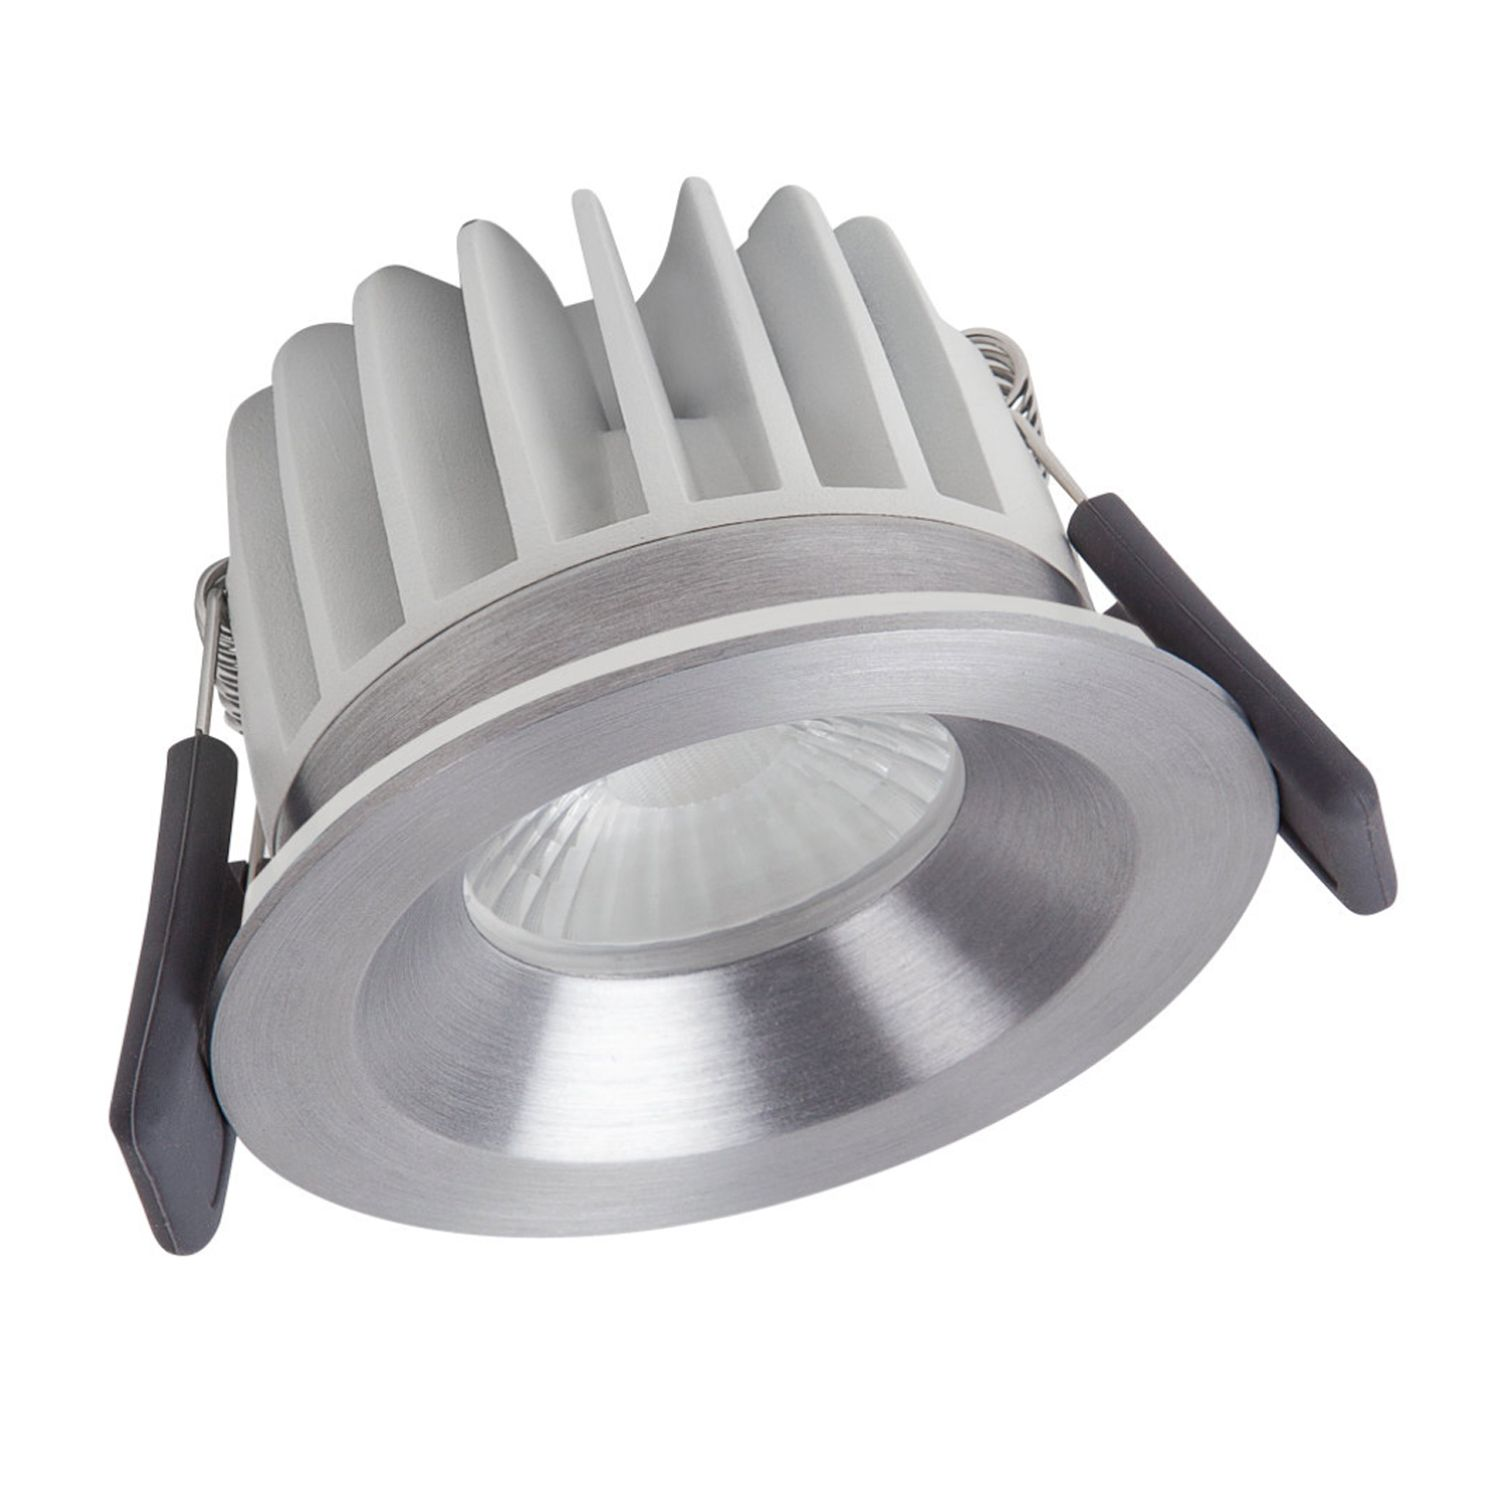 Ledvance LED Downlight SPOT FIREPROOF FIX 8W 4000K IP65 | Cool White - Dimmable